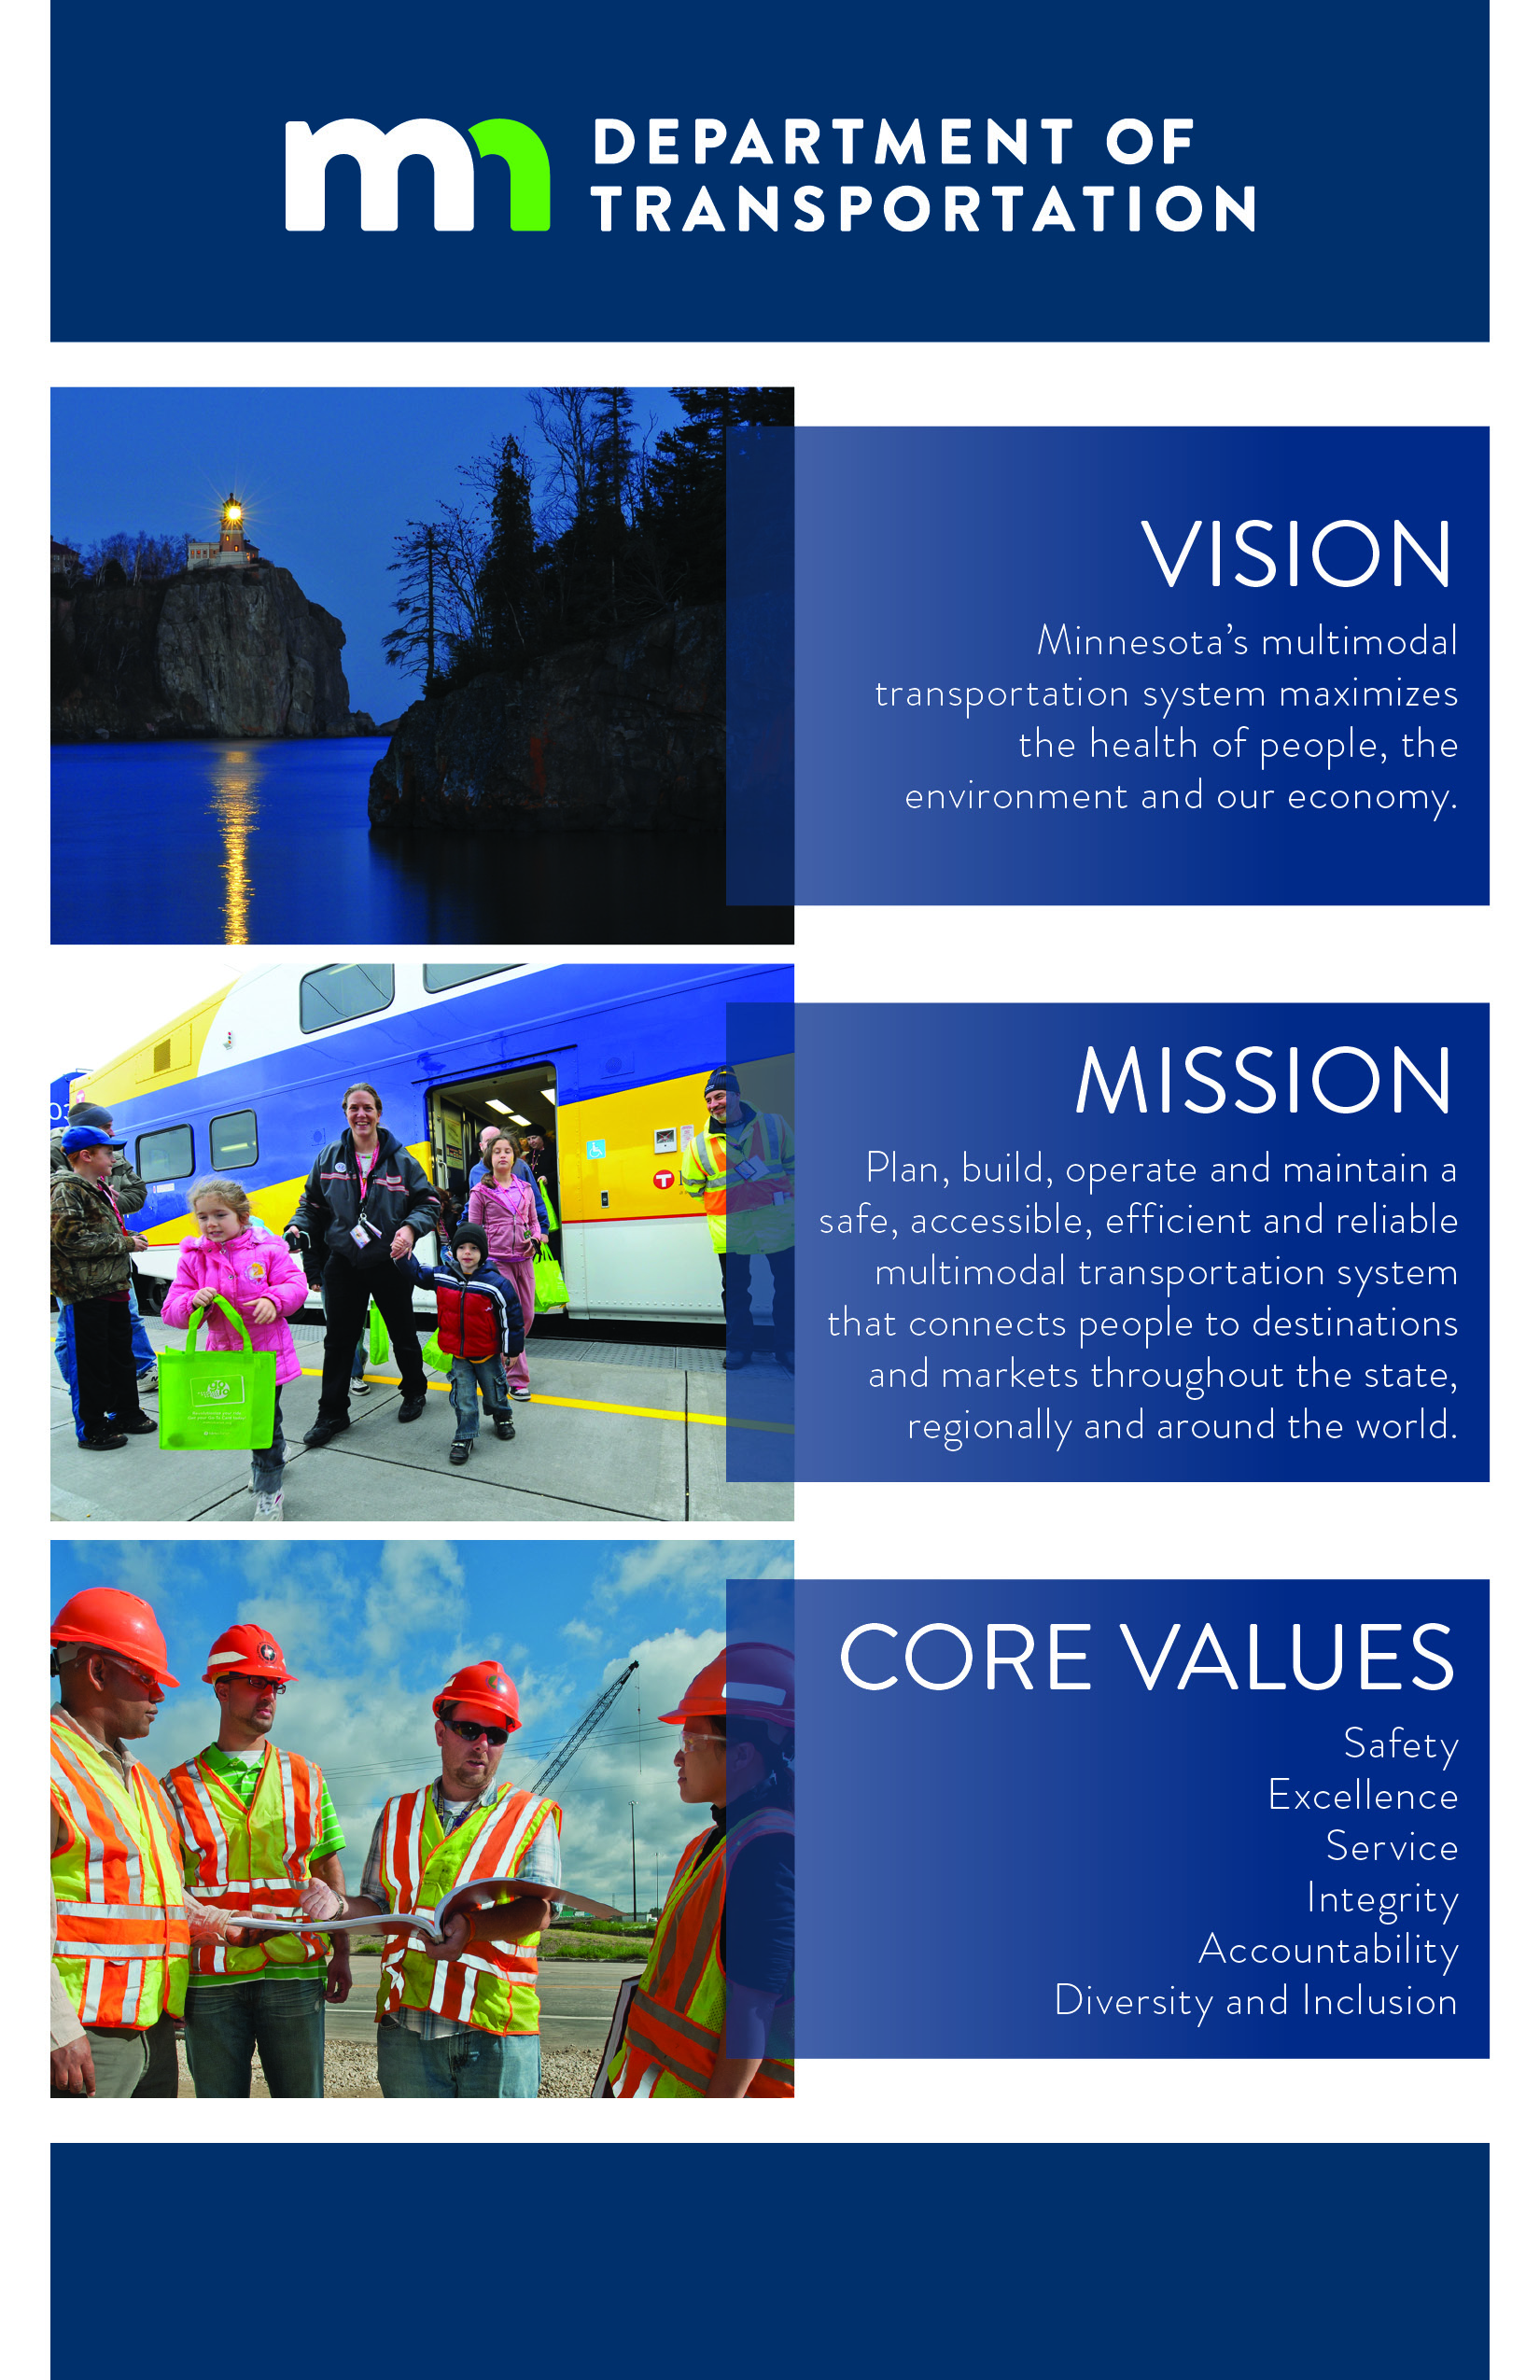 MnDOT vision, mission and core values